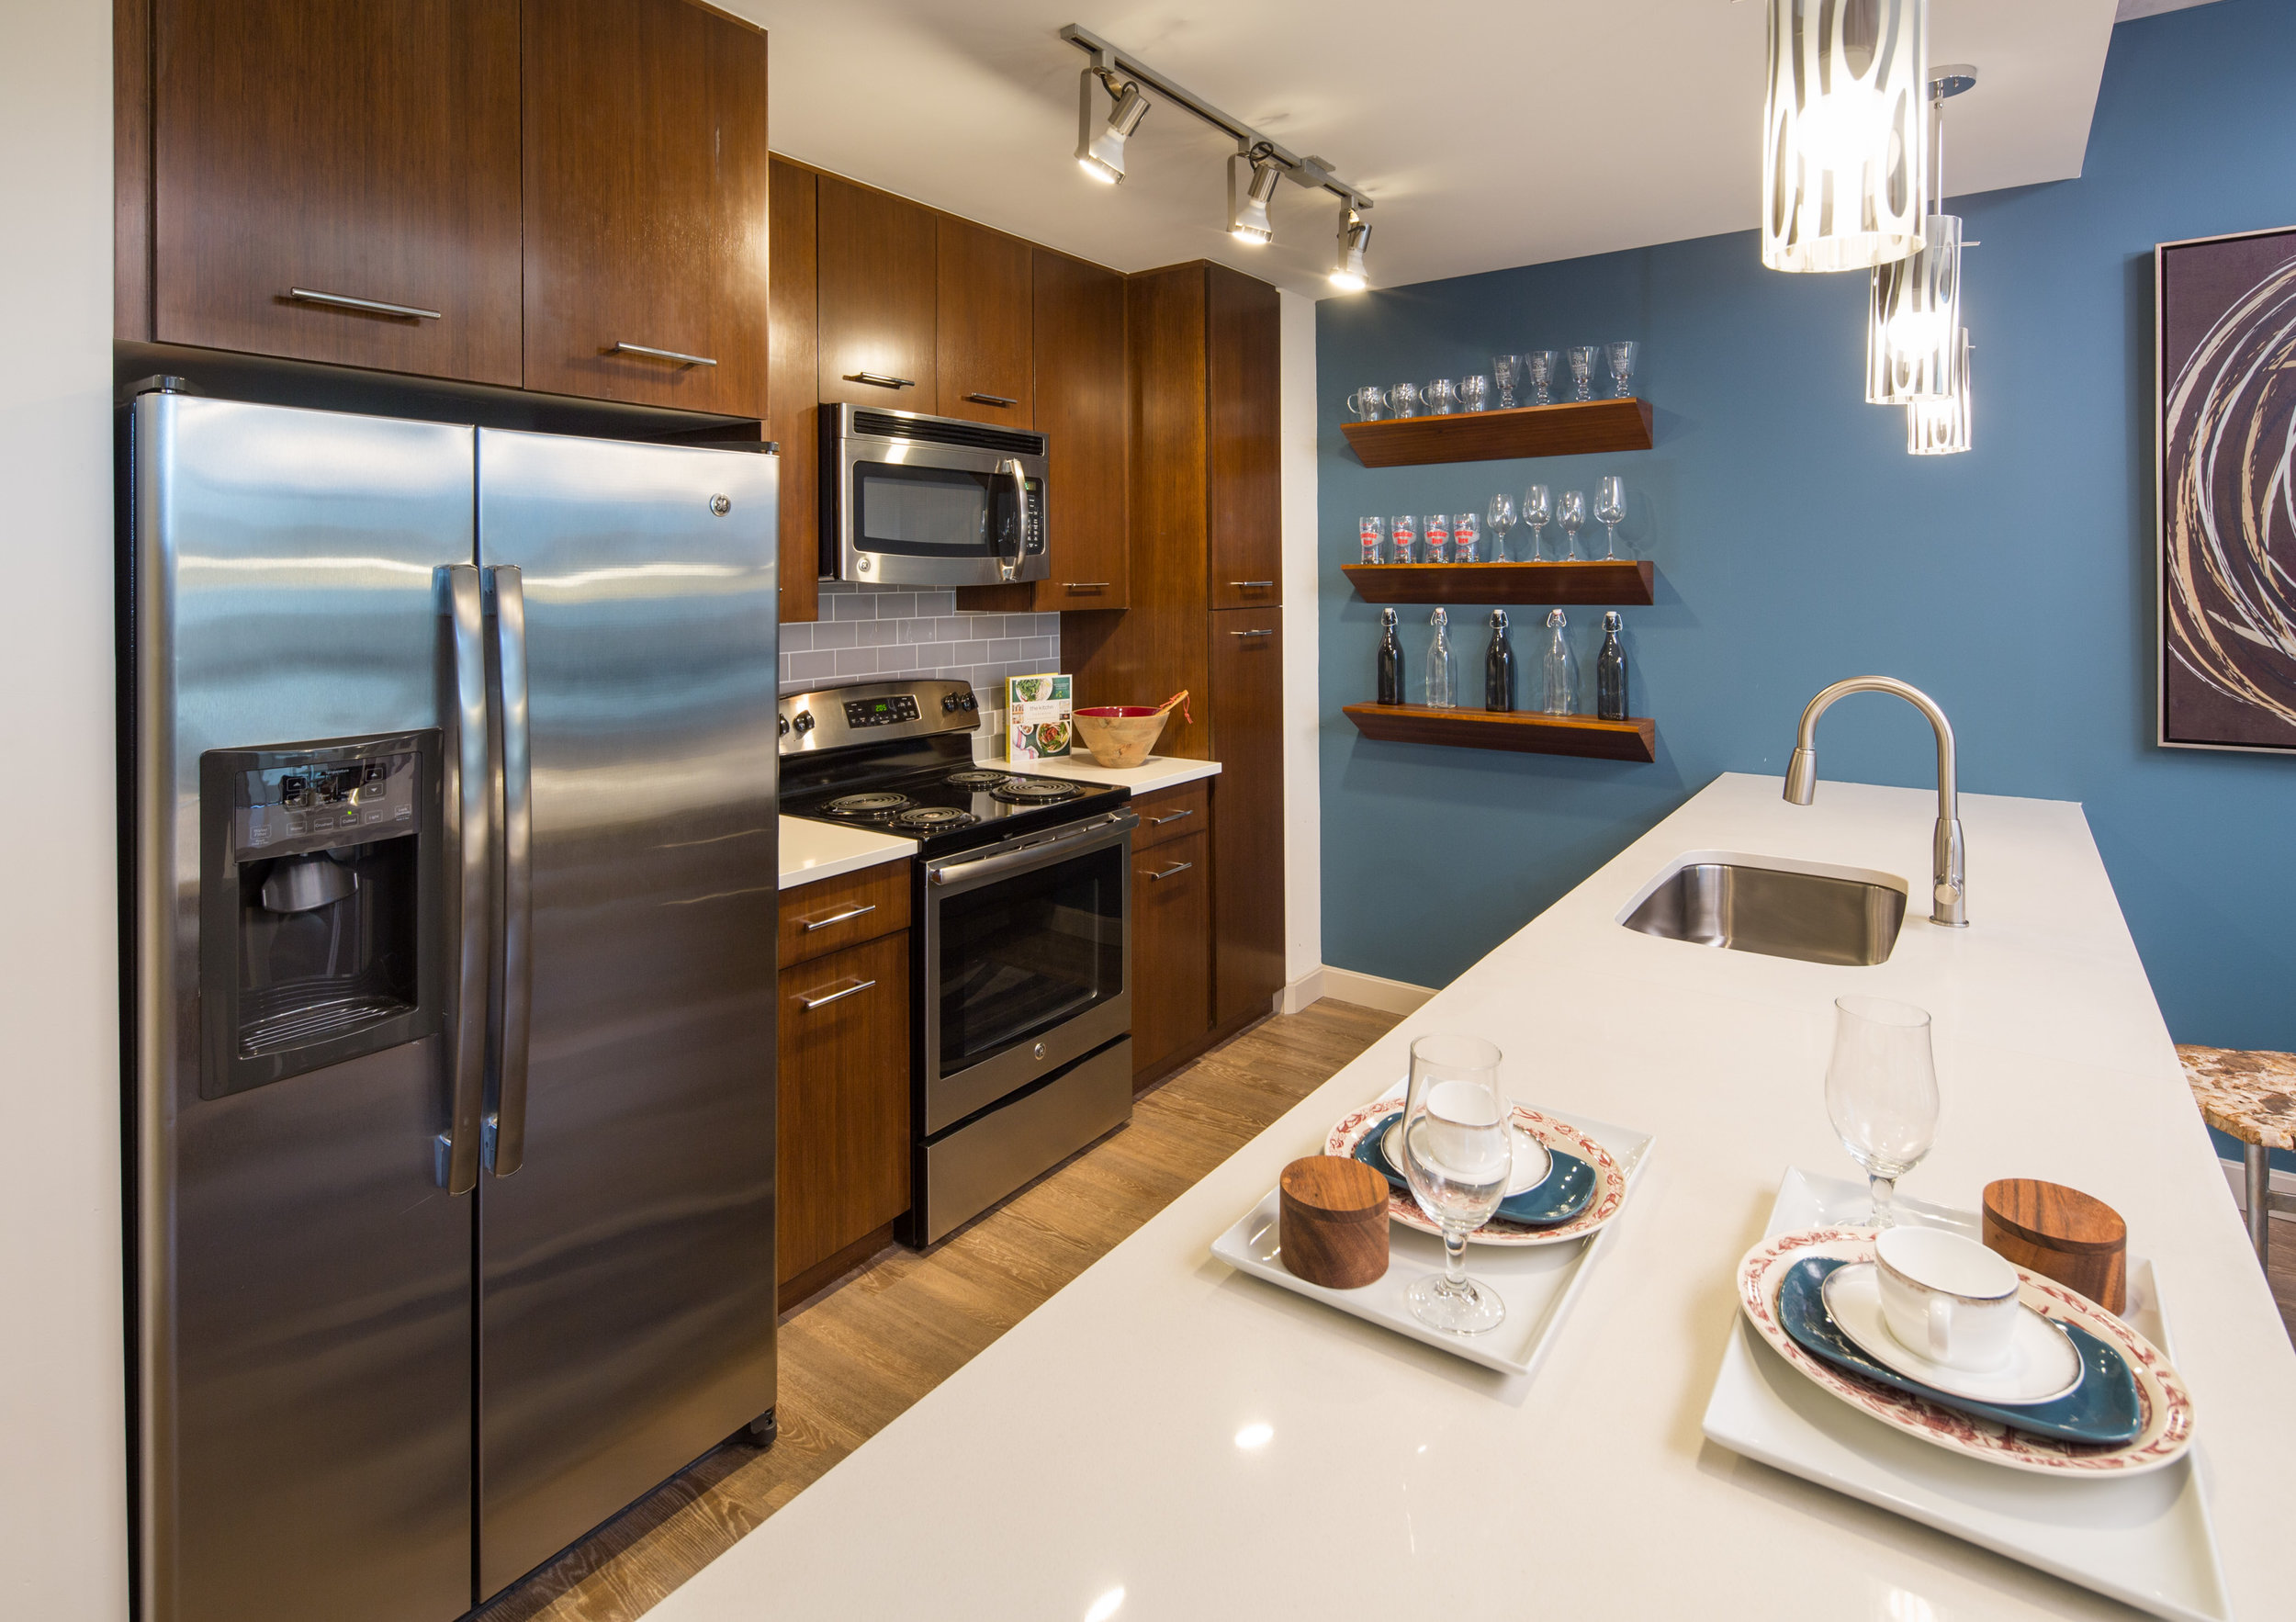 Kitchens at 3601 are big enough to satisfy anyone's inner Julia Child.